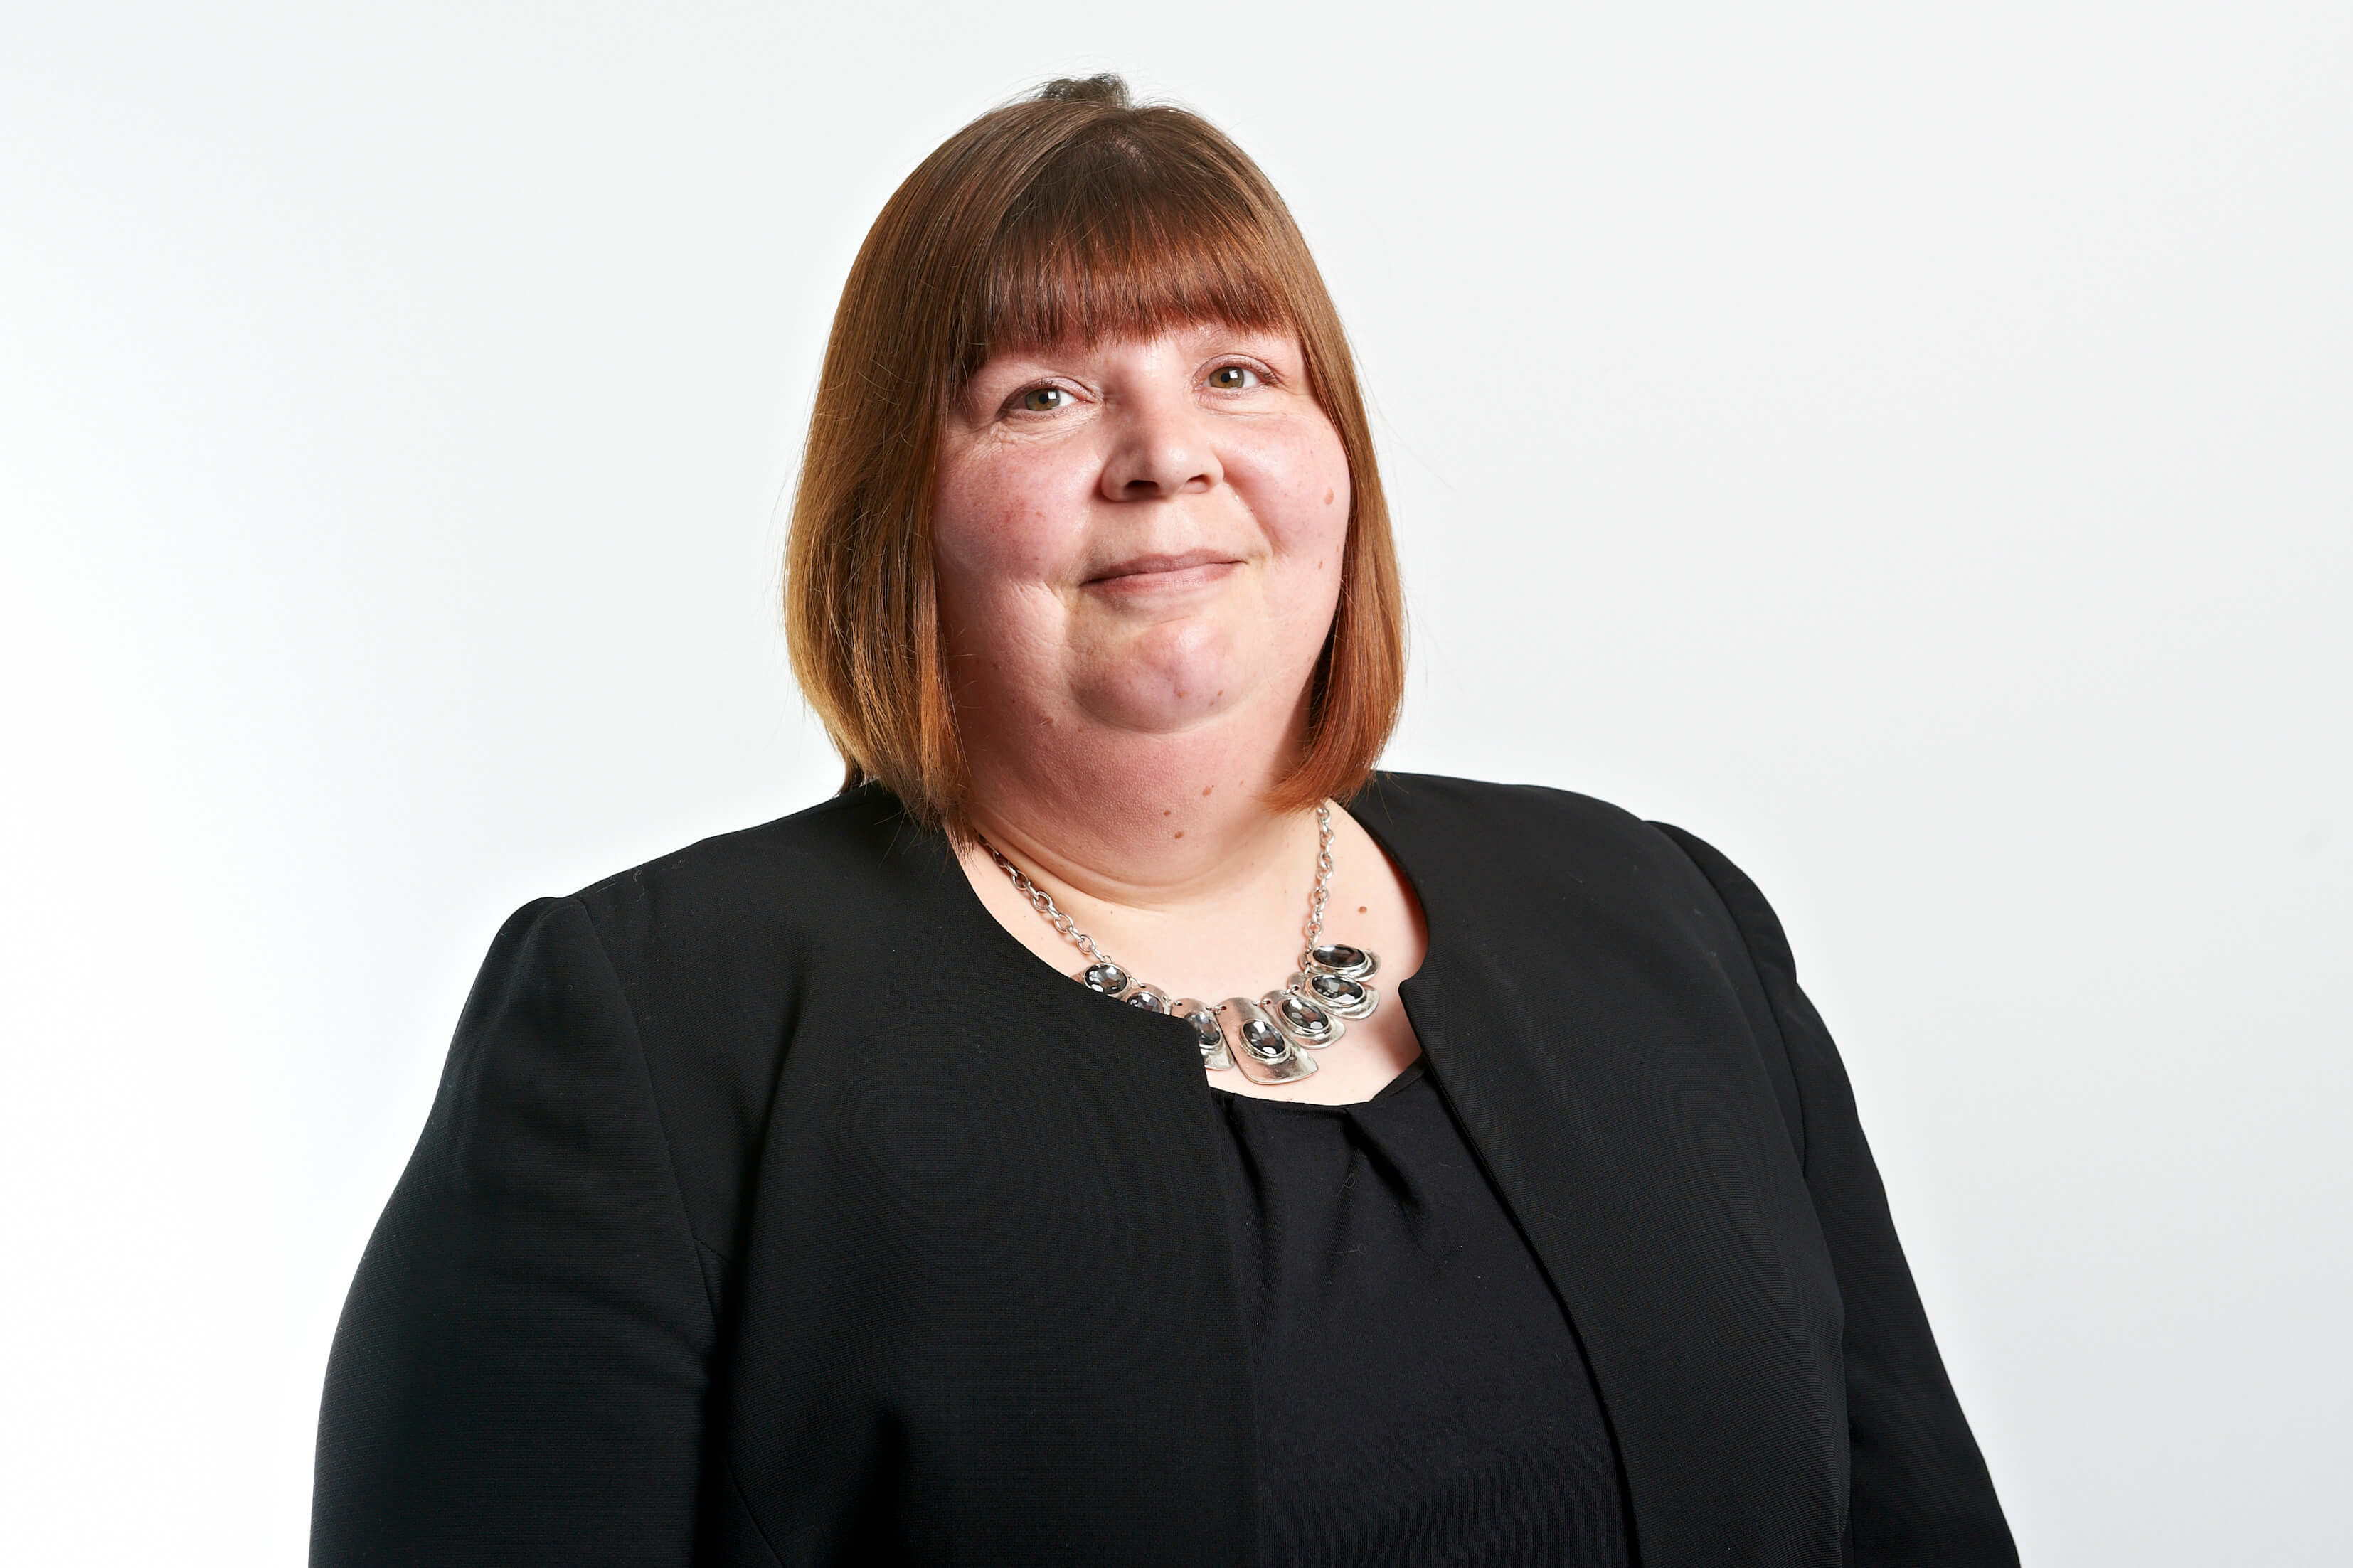 A profile of Charlotte Moore, a senior supervisor to the Thompsons Solicitors employment rights team in London.